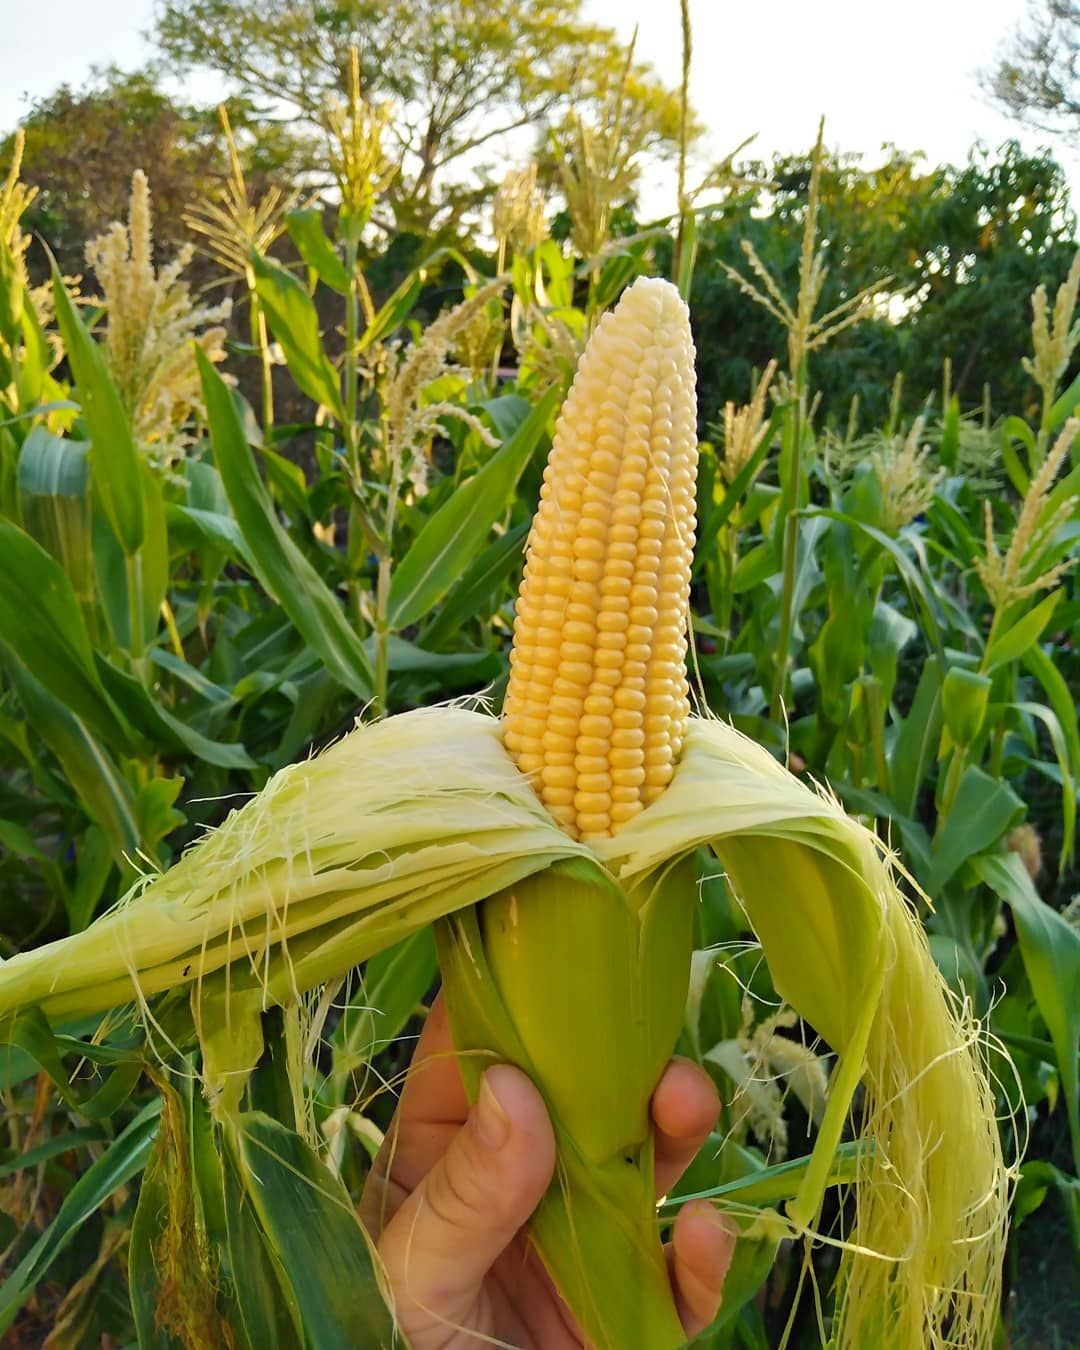 So Good Corn Is Starting To Be Ready Not What I Thought I Planted But This Is Amazing Eating Fresh Picked Food Garden Permaculture Gardening Growing Food